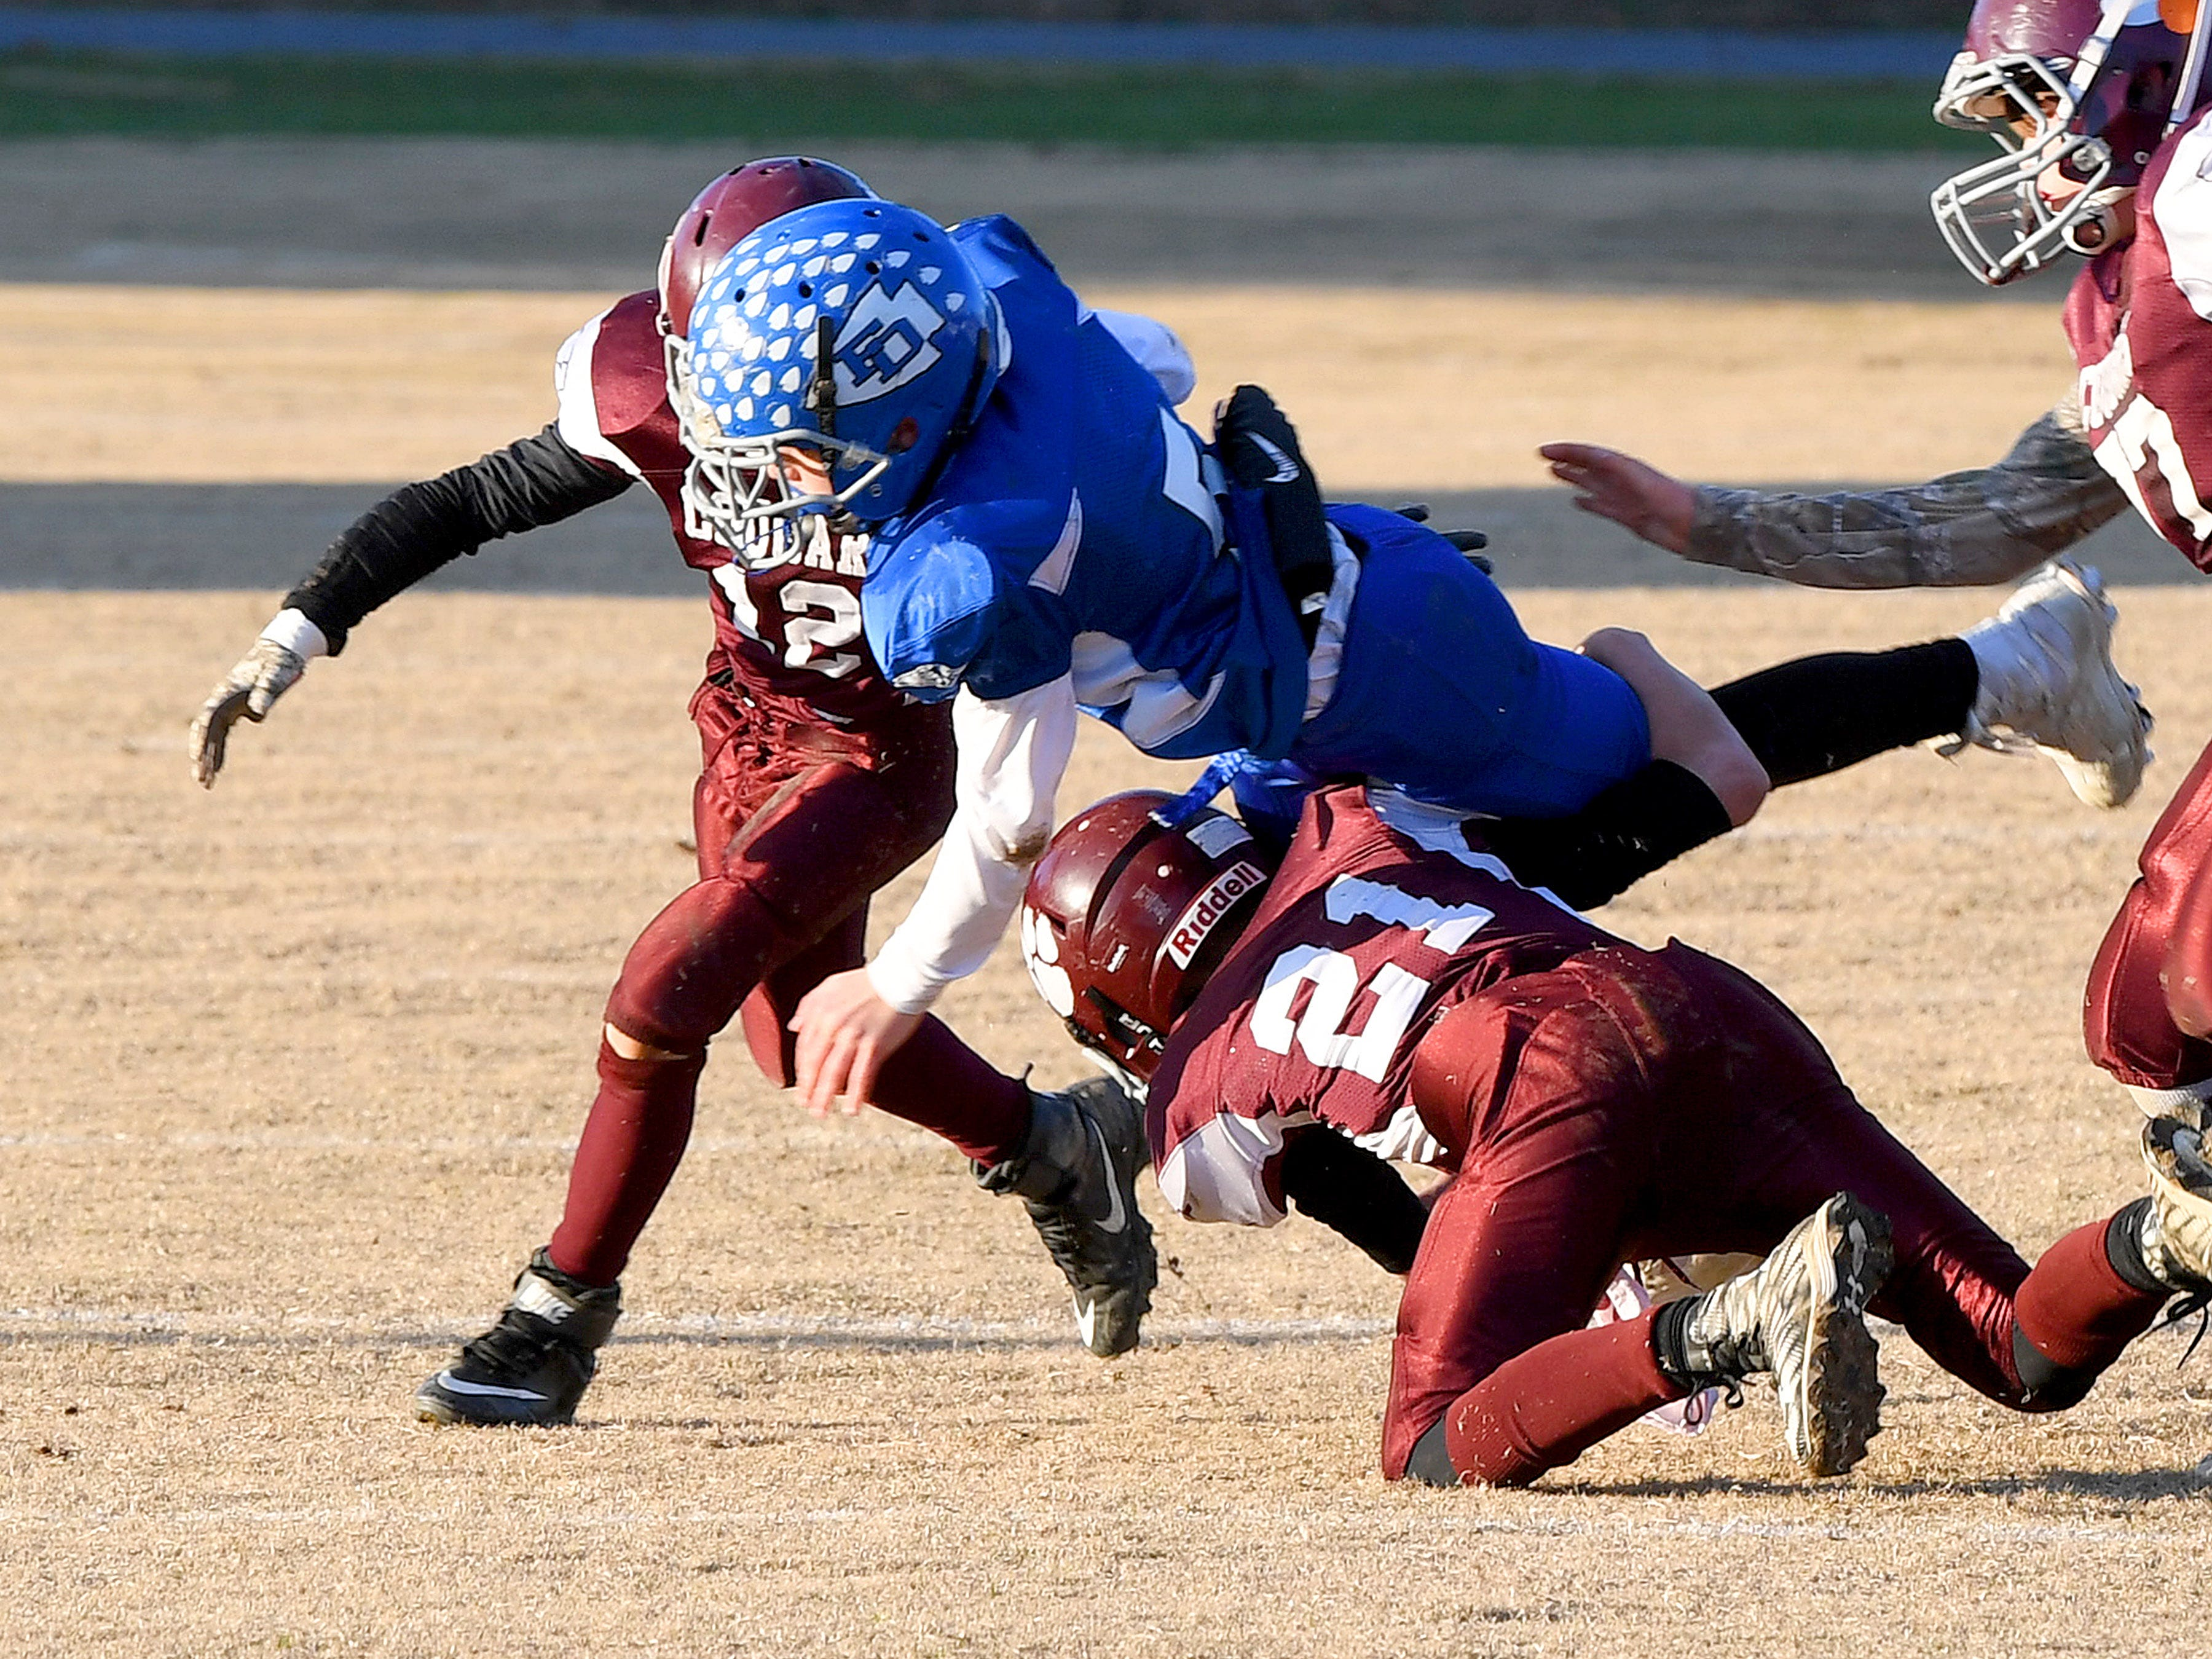 Fort Defiance's Trey Miller goes down with the ball as he is tackled by Stuarts Draft's Mason Sprouse and Landon Graber during the Augusta County Quarterback Club Juniors Super Bowl in Fishersville on Sunday, Nov. 11, 2018.  Fort Defiance beats Stuarts Draft, 13-12.